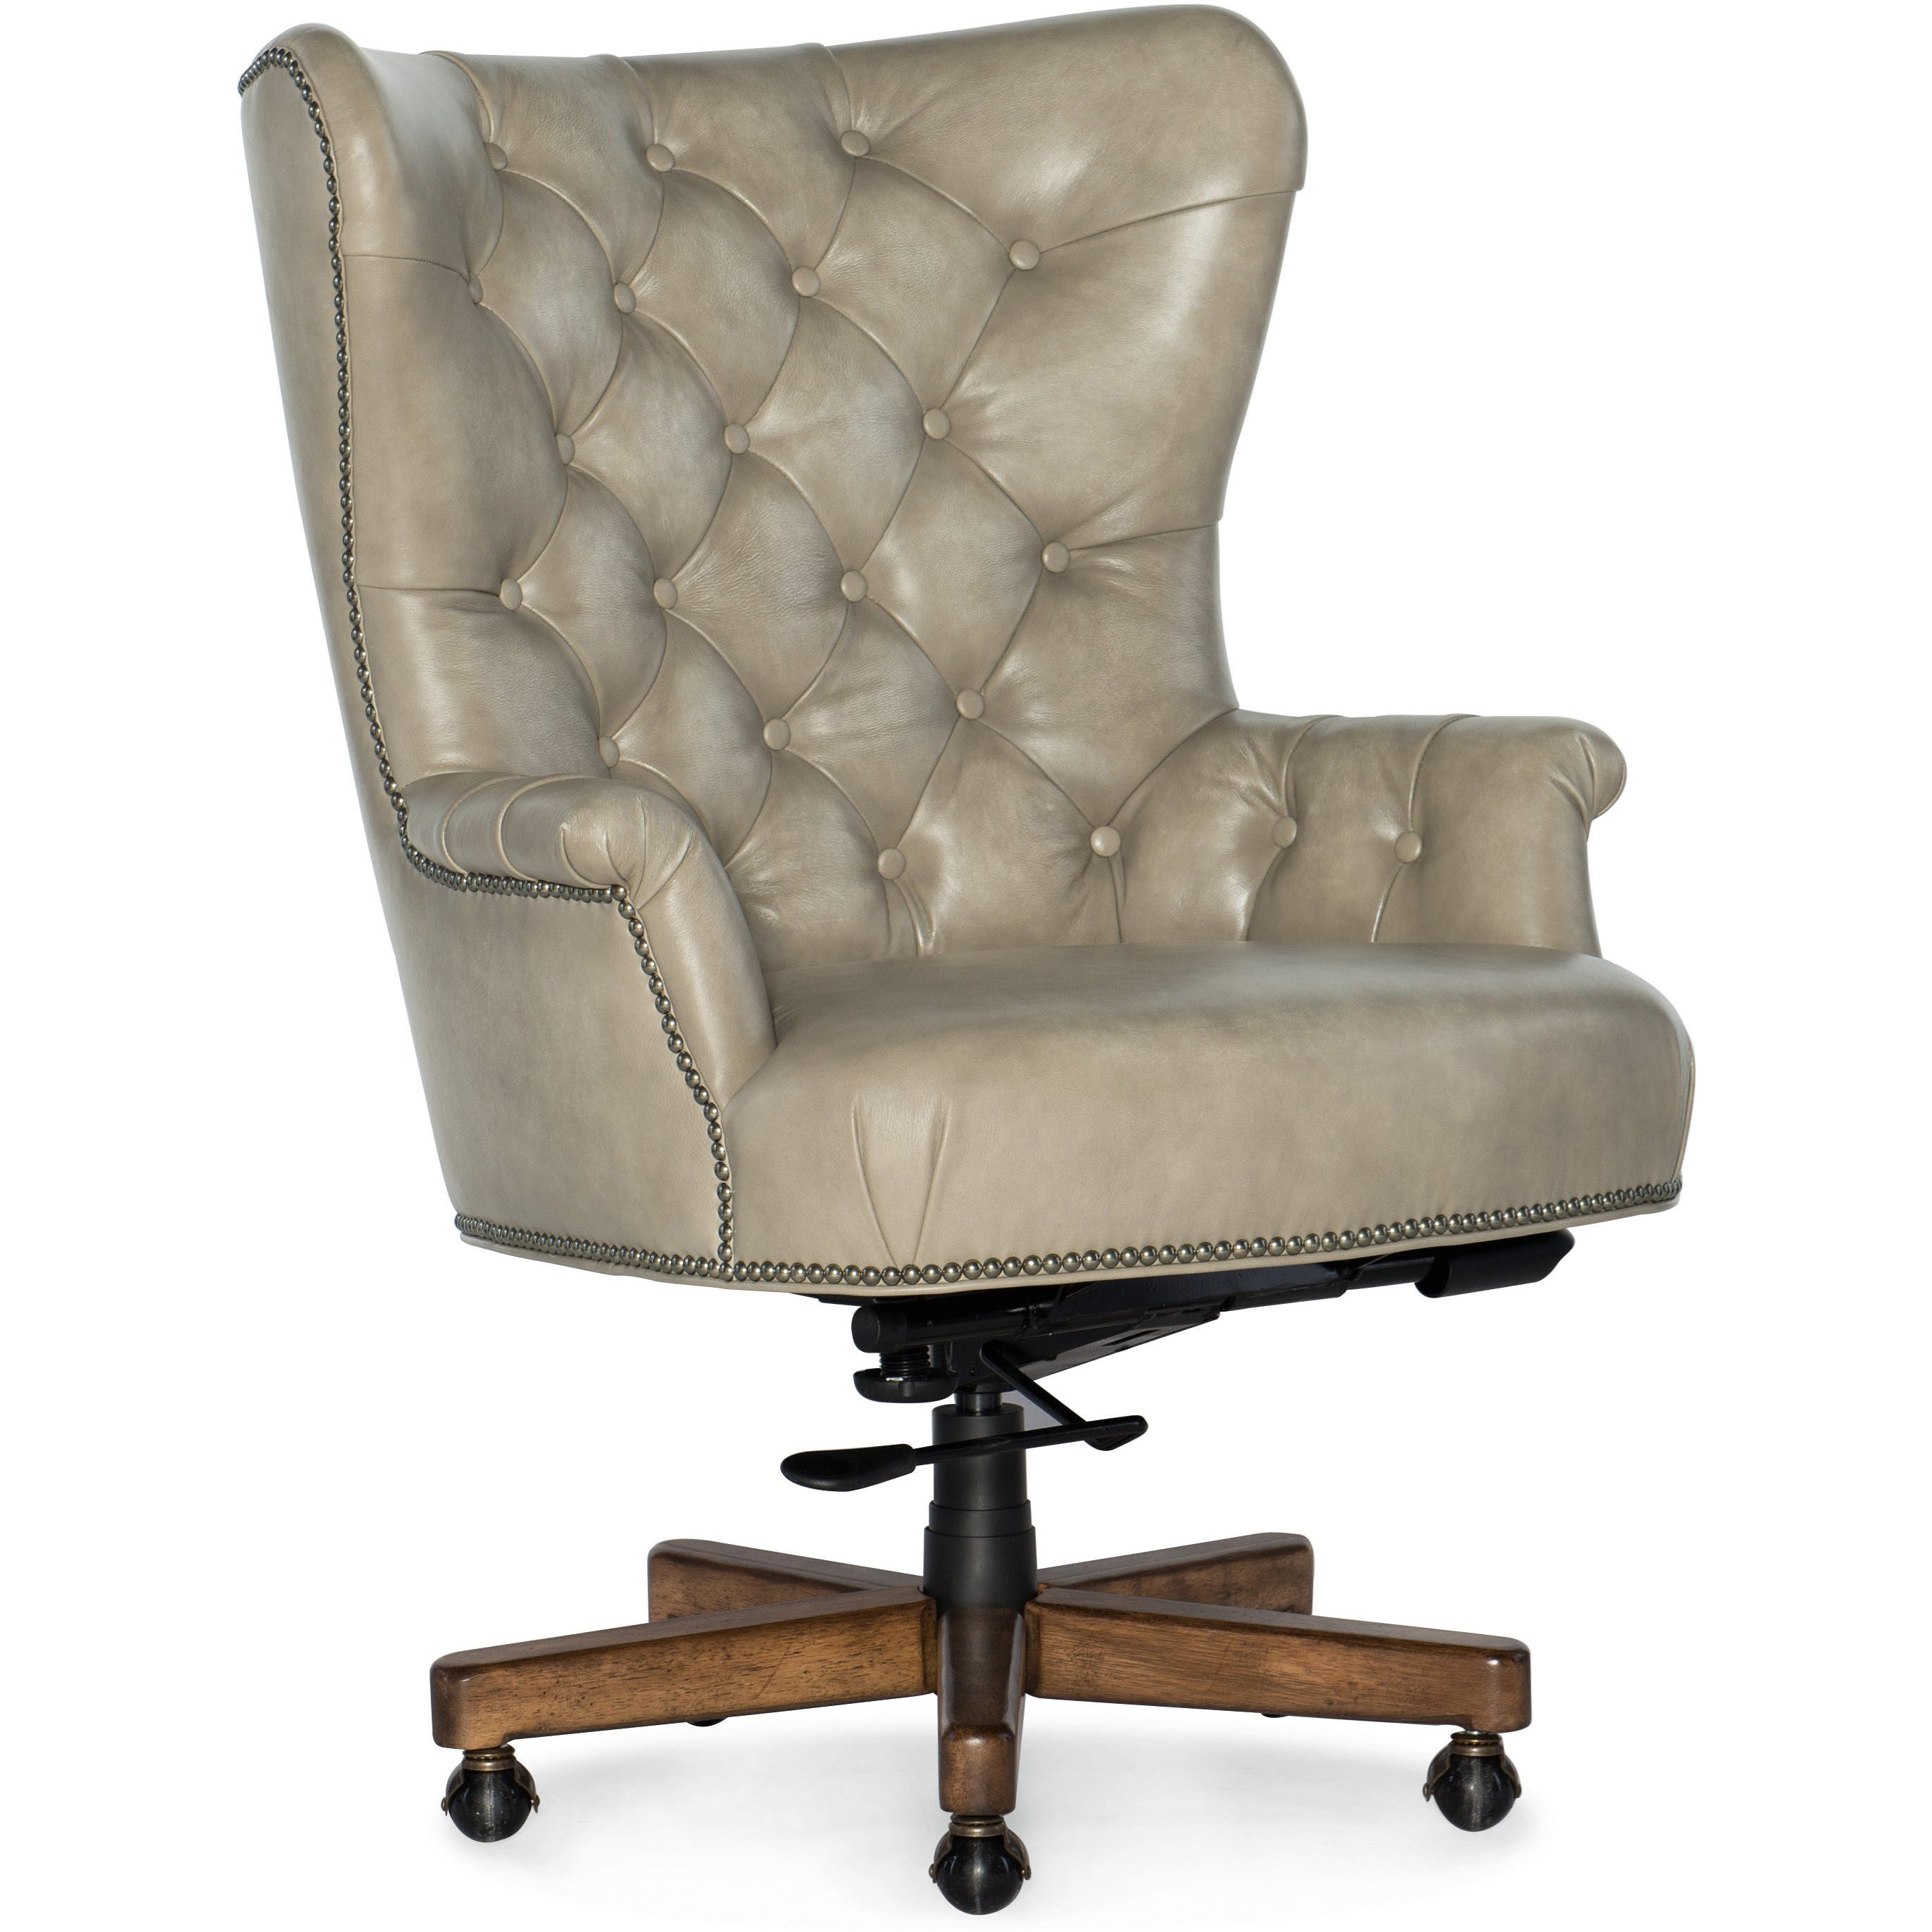 Tufted Leather Office Chair Executive Seating Traditional Executive Chair With Button Tufting By Hooker Furniture At Dunk Bright Furniture